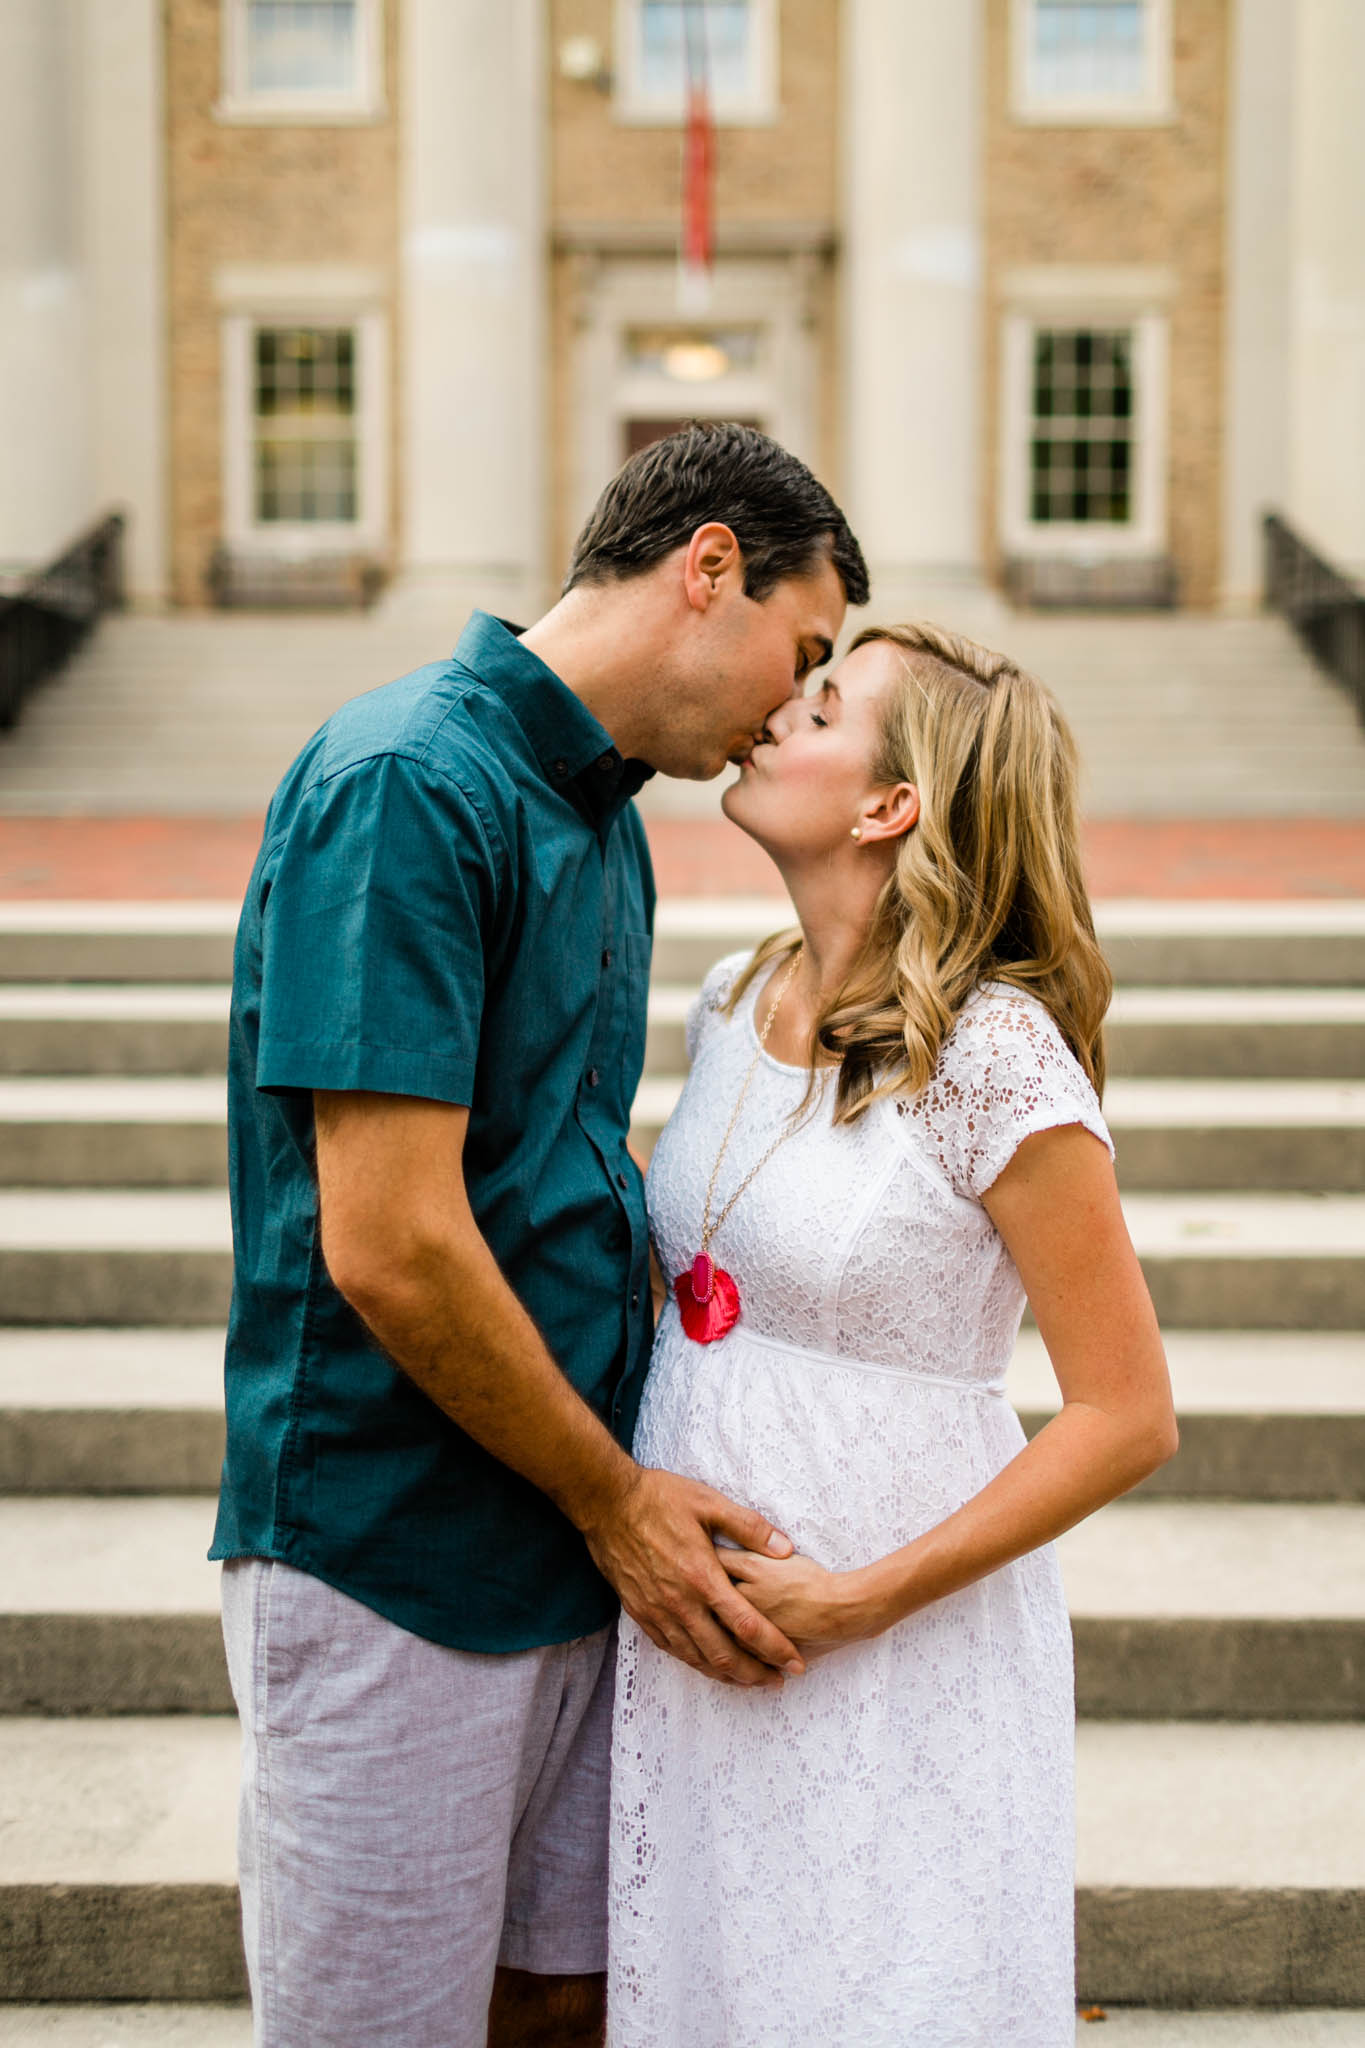 Maternity Photography at UNC Campus | By G. Lin Photography | South Building | Couple kissing